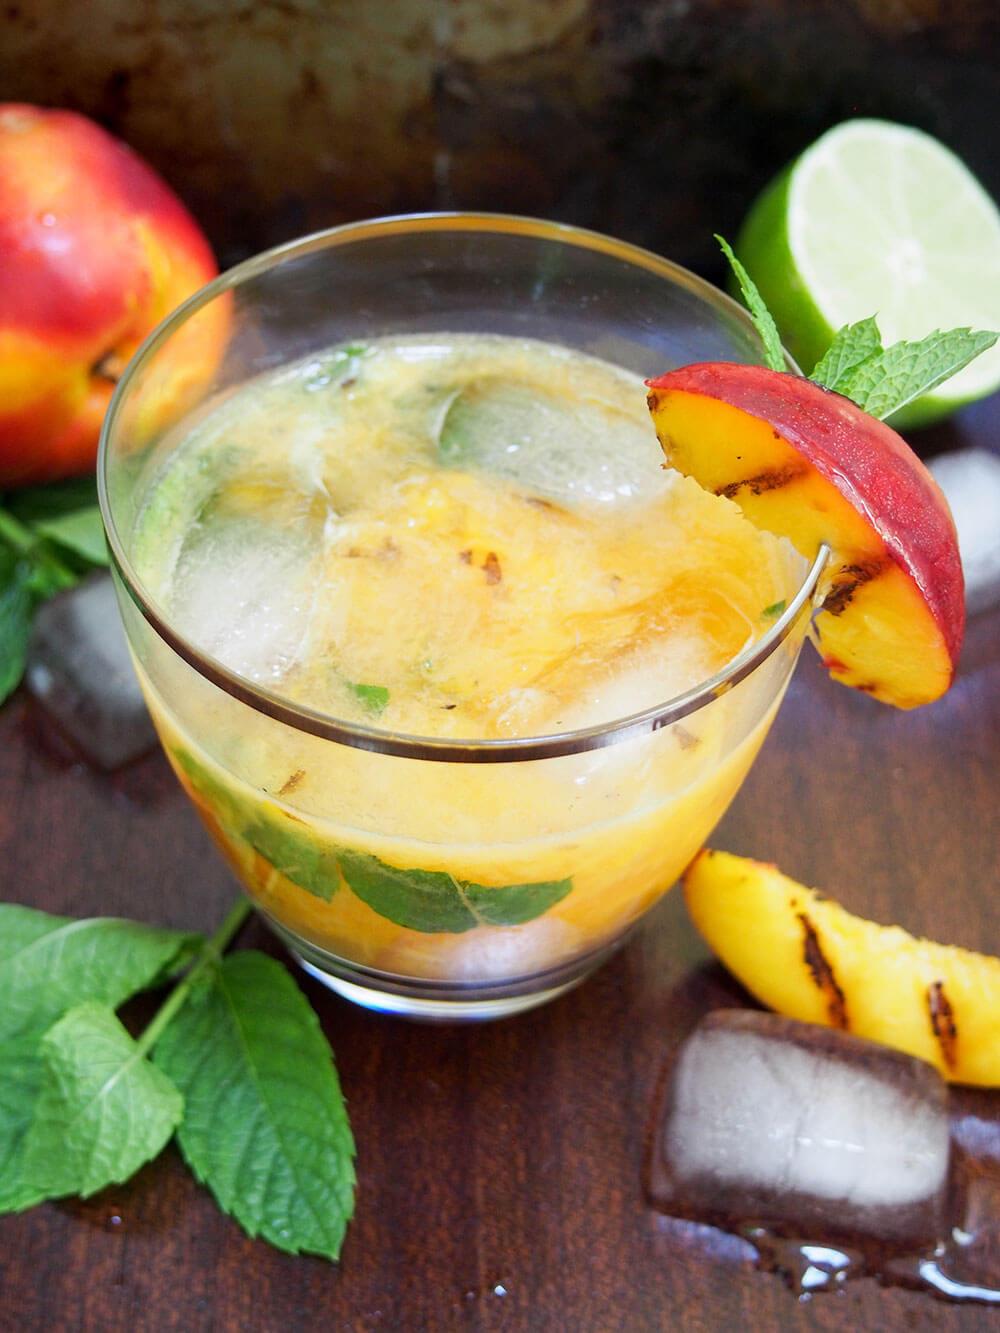 Grilled peach mojito with ice in drink